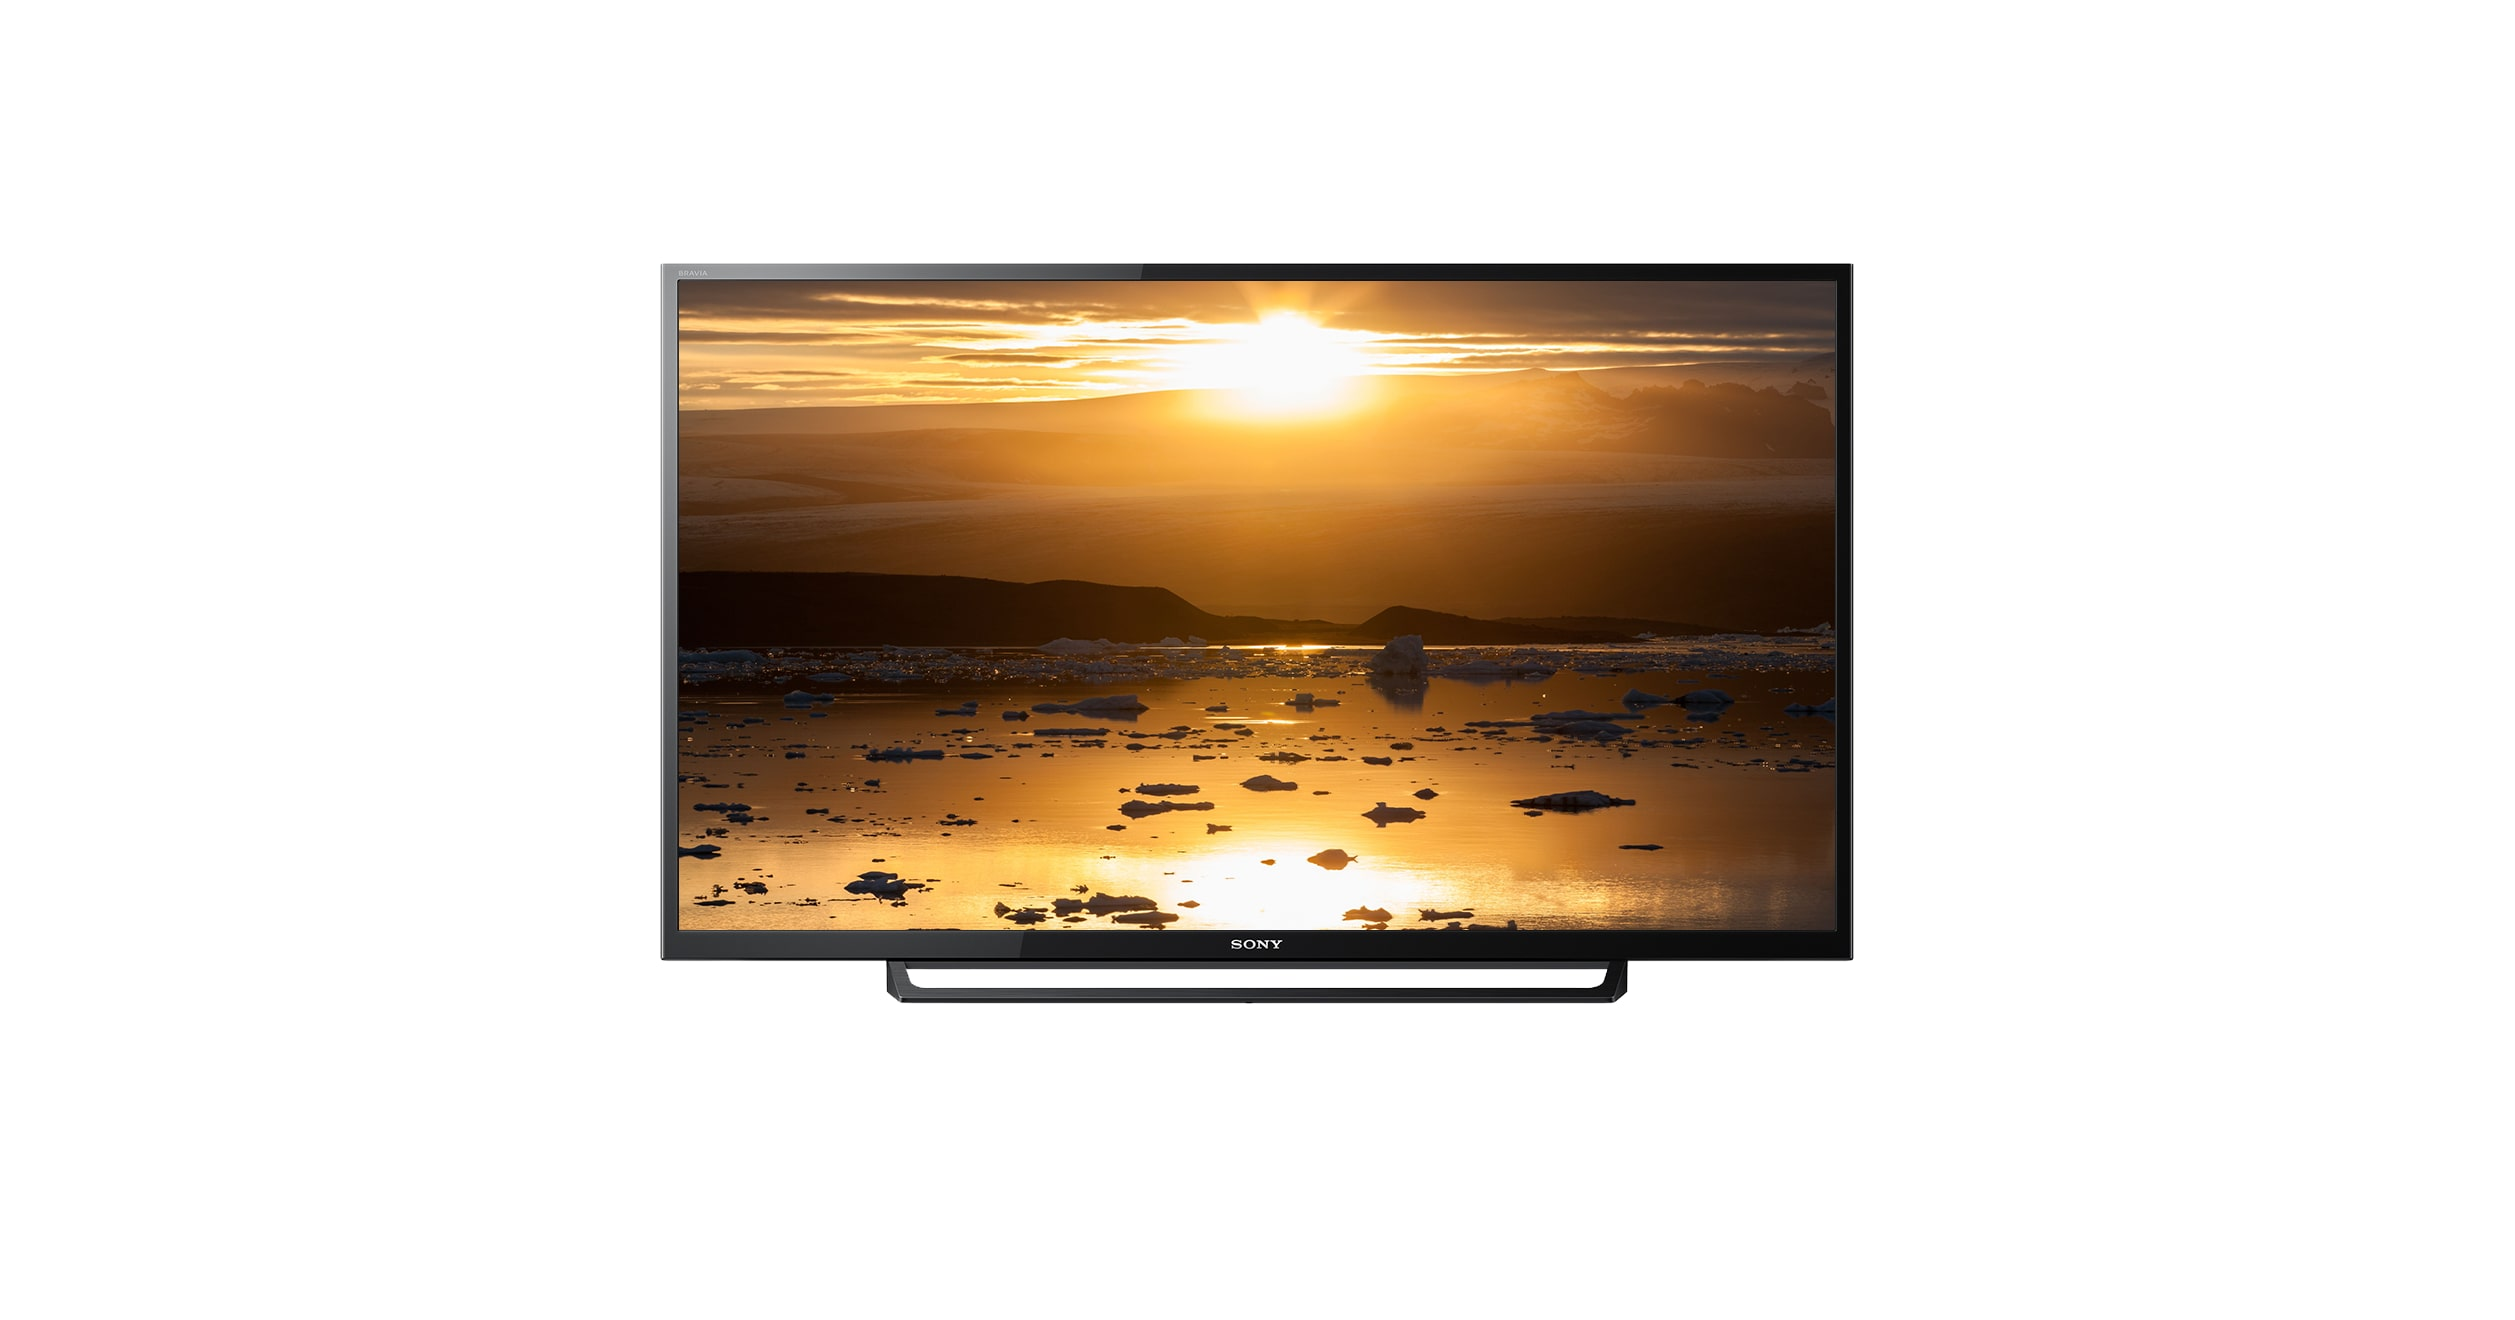 1080p Tv With Usb Full Hd Tv With Hdd Recording R30e Sony Sa